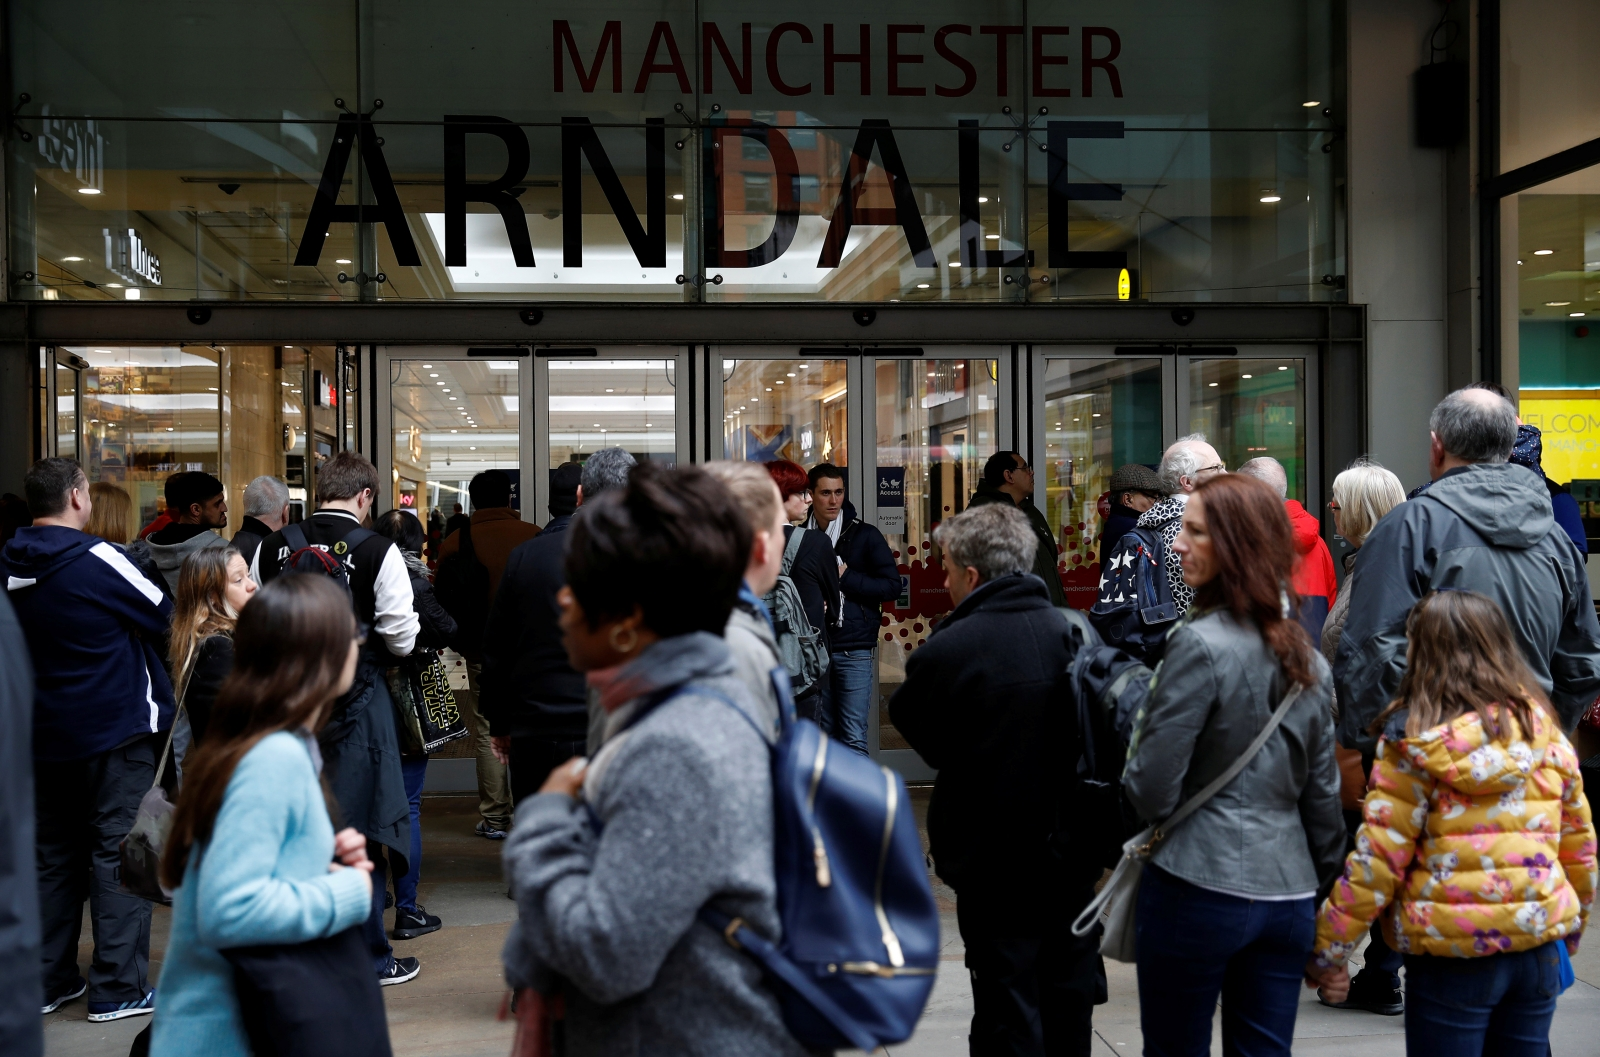 Arndale Center in Manchester